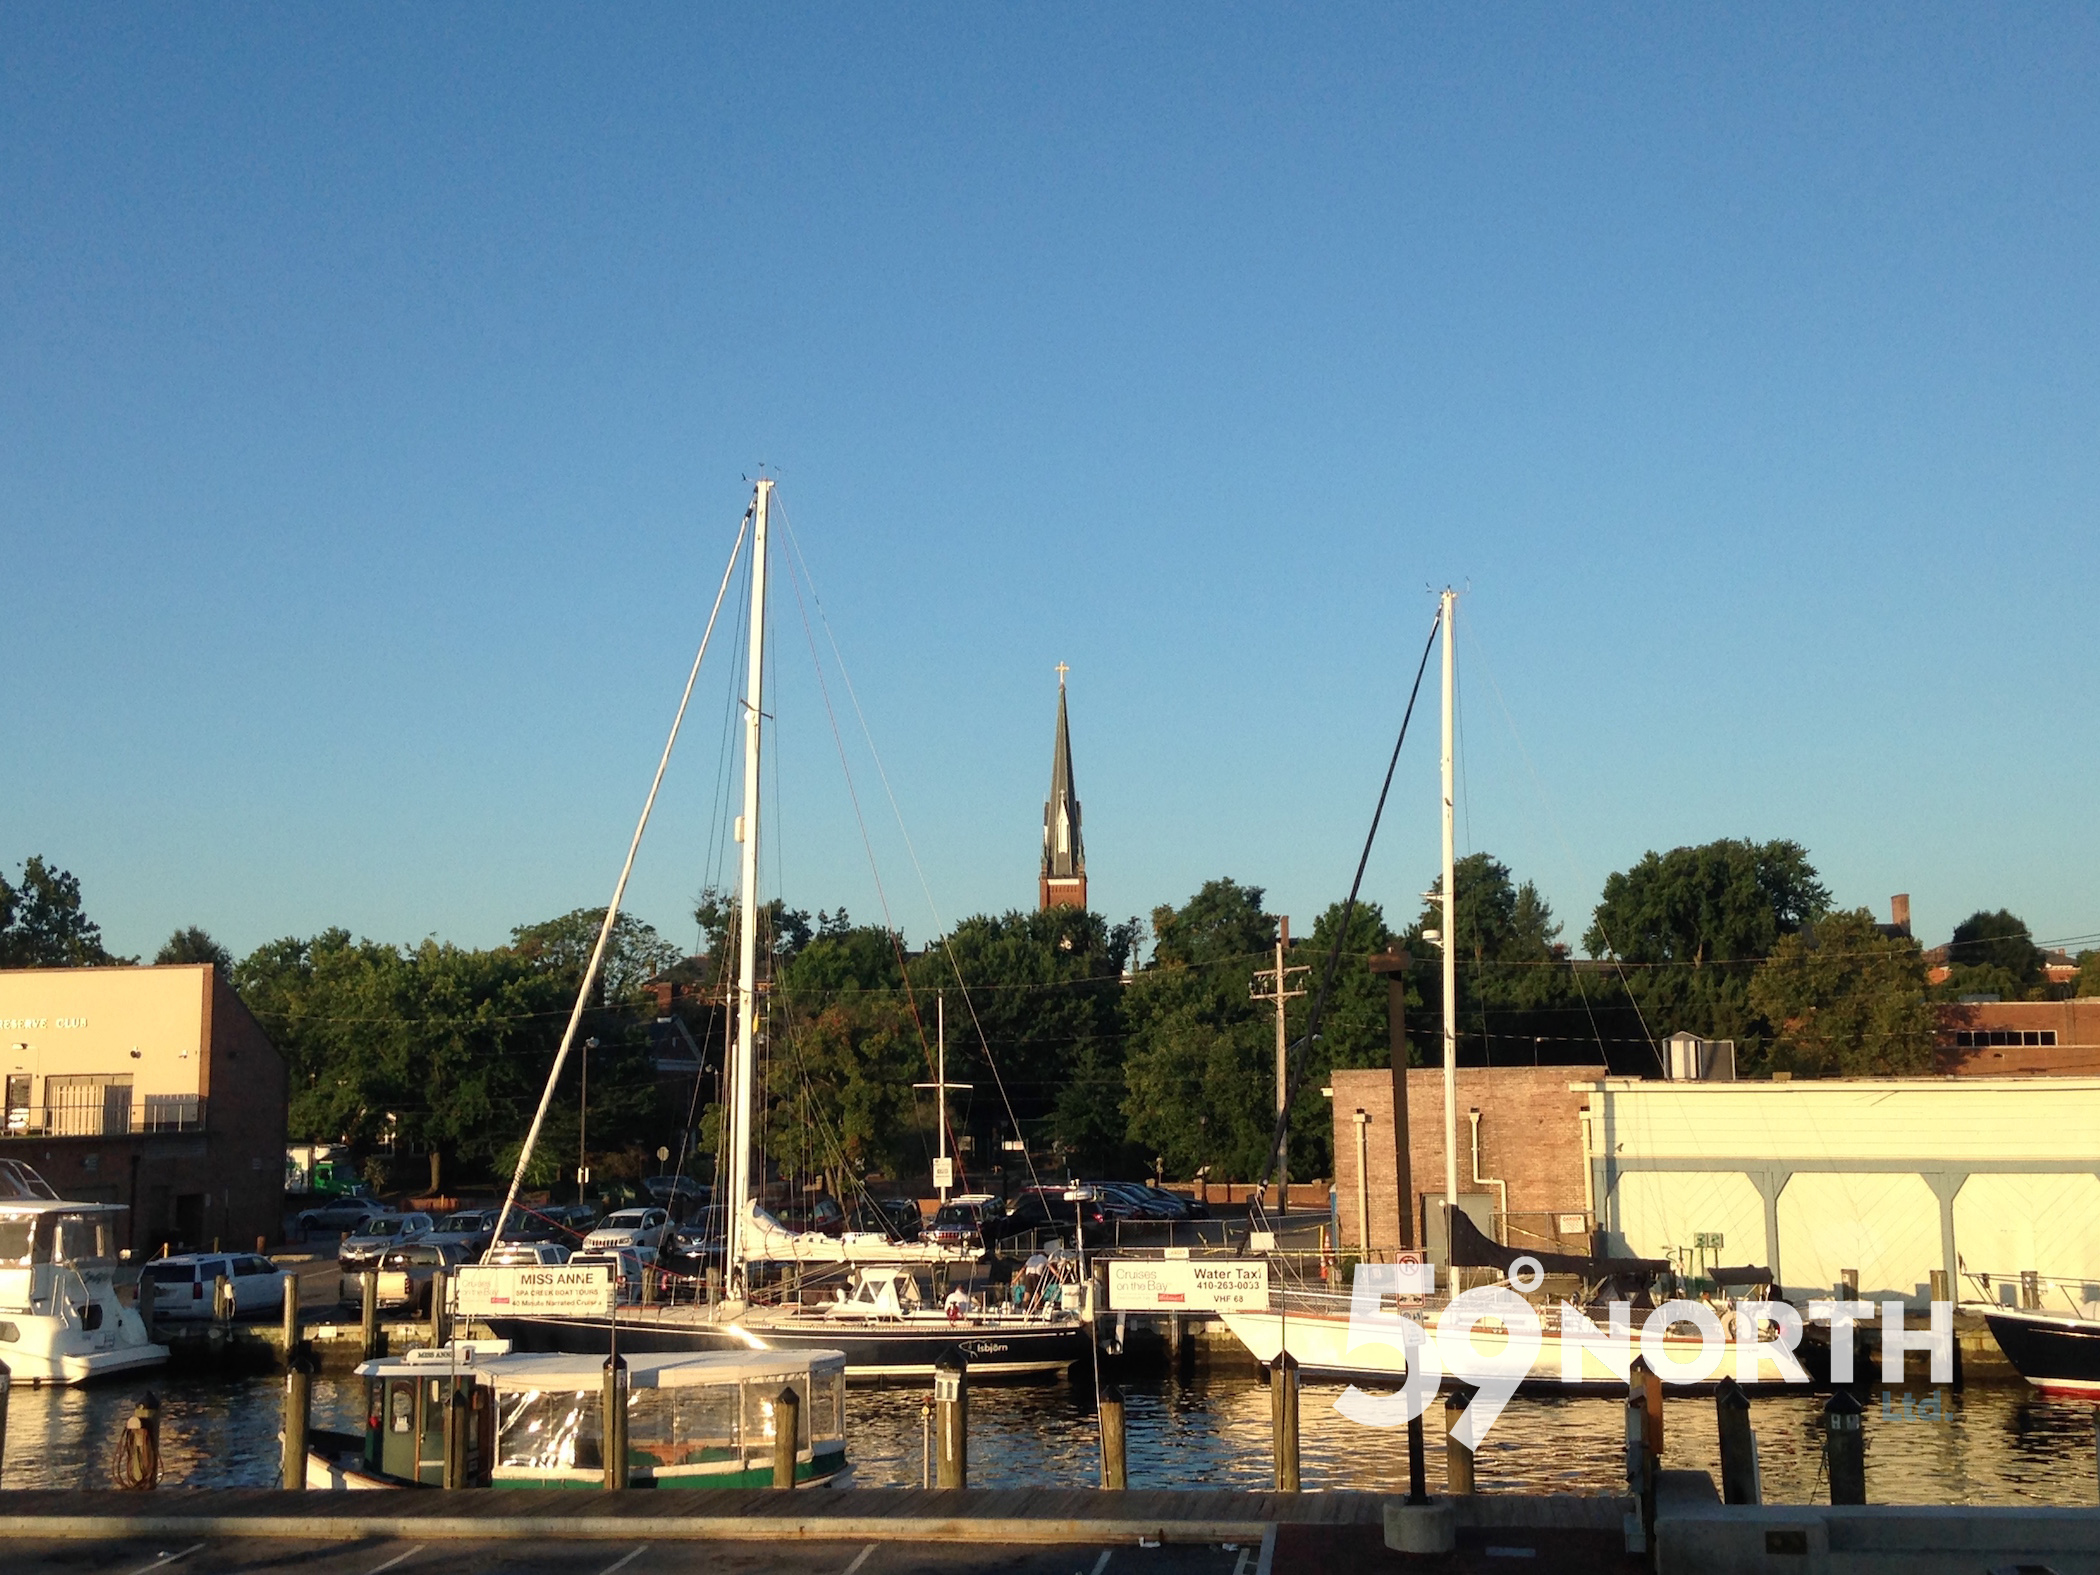 Back in Annapolis again, docked in town after coming down from Canada! Aug. 2016